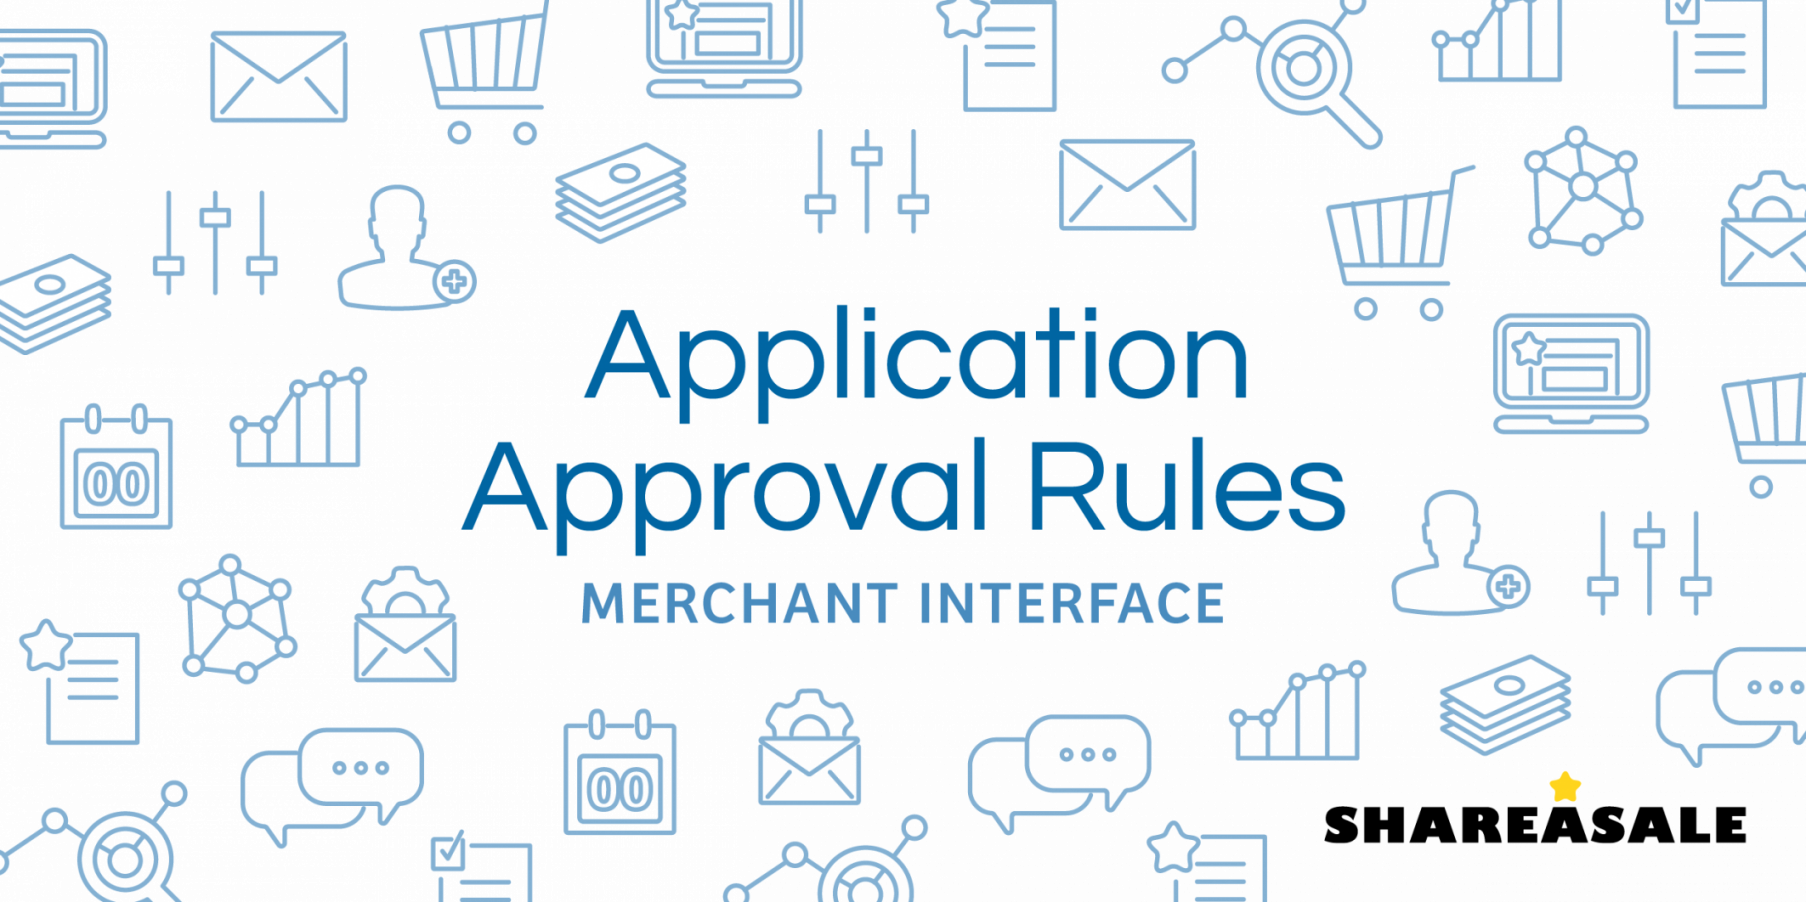 Save Time with Approval Rules